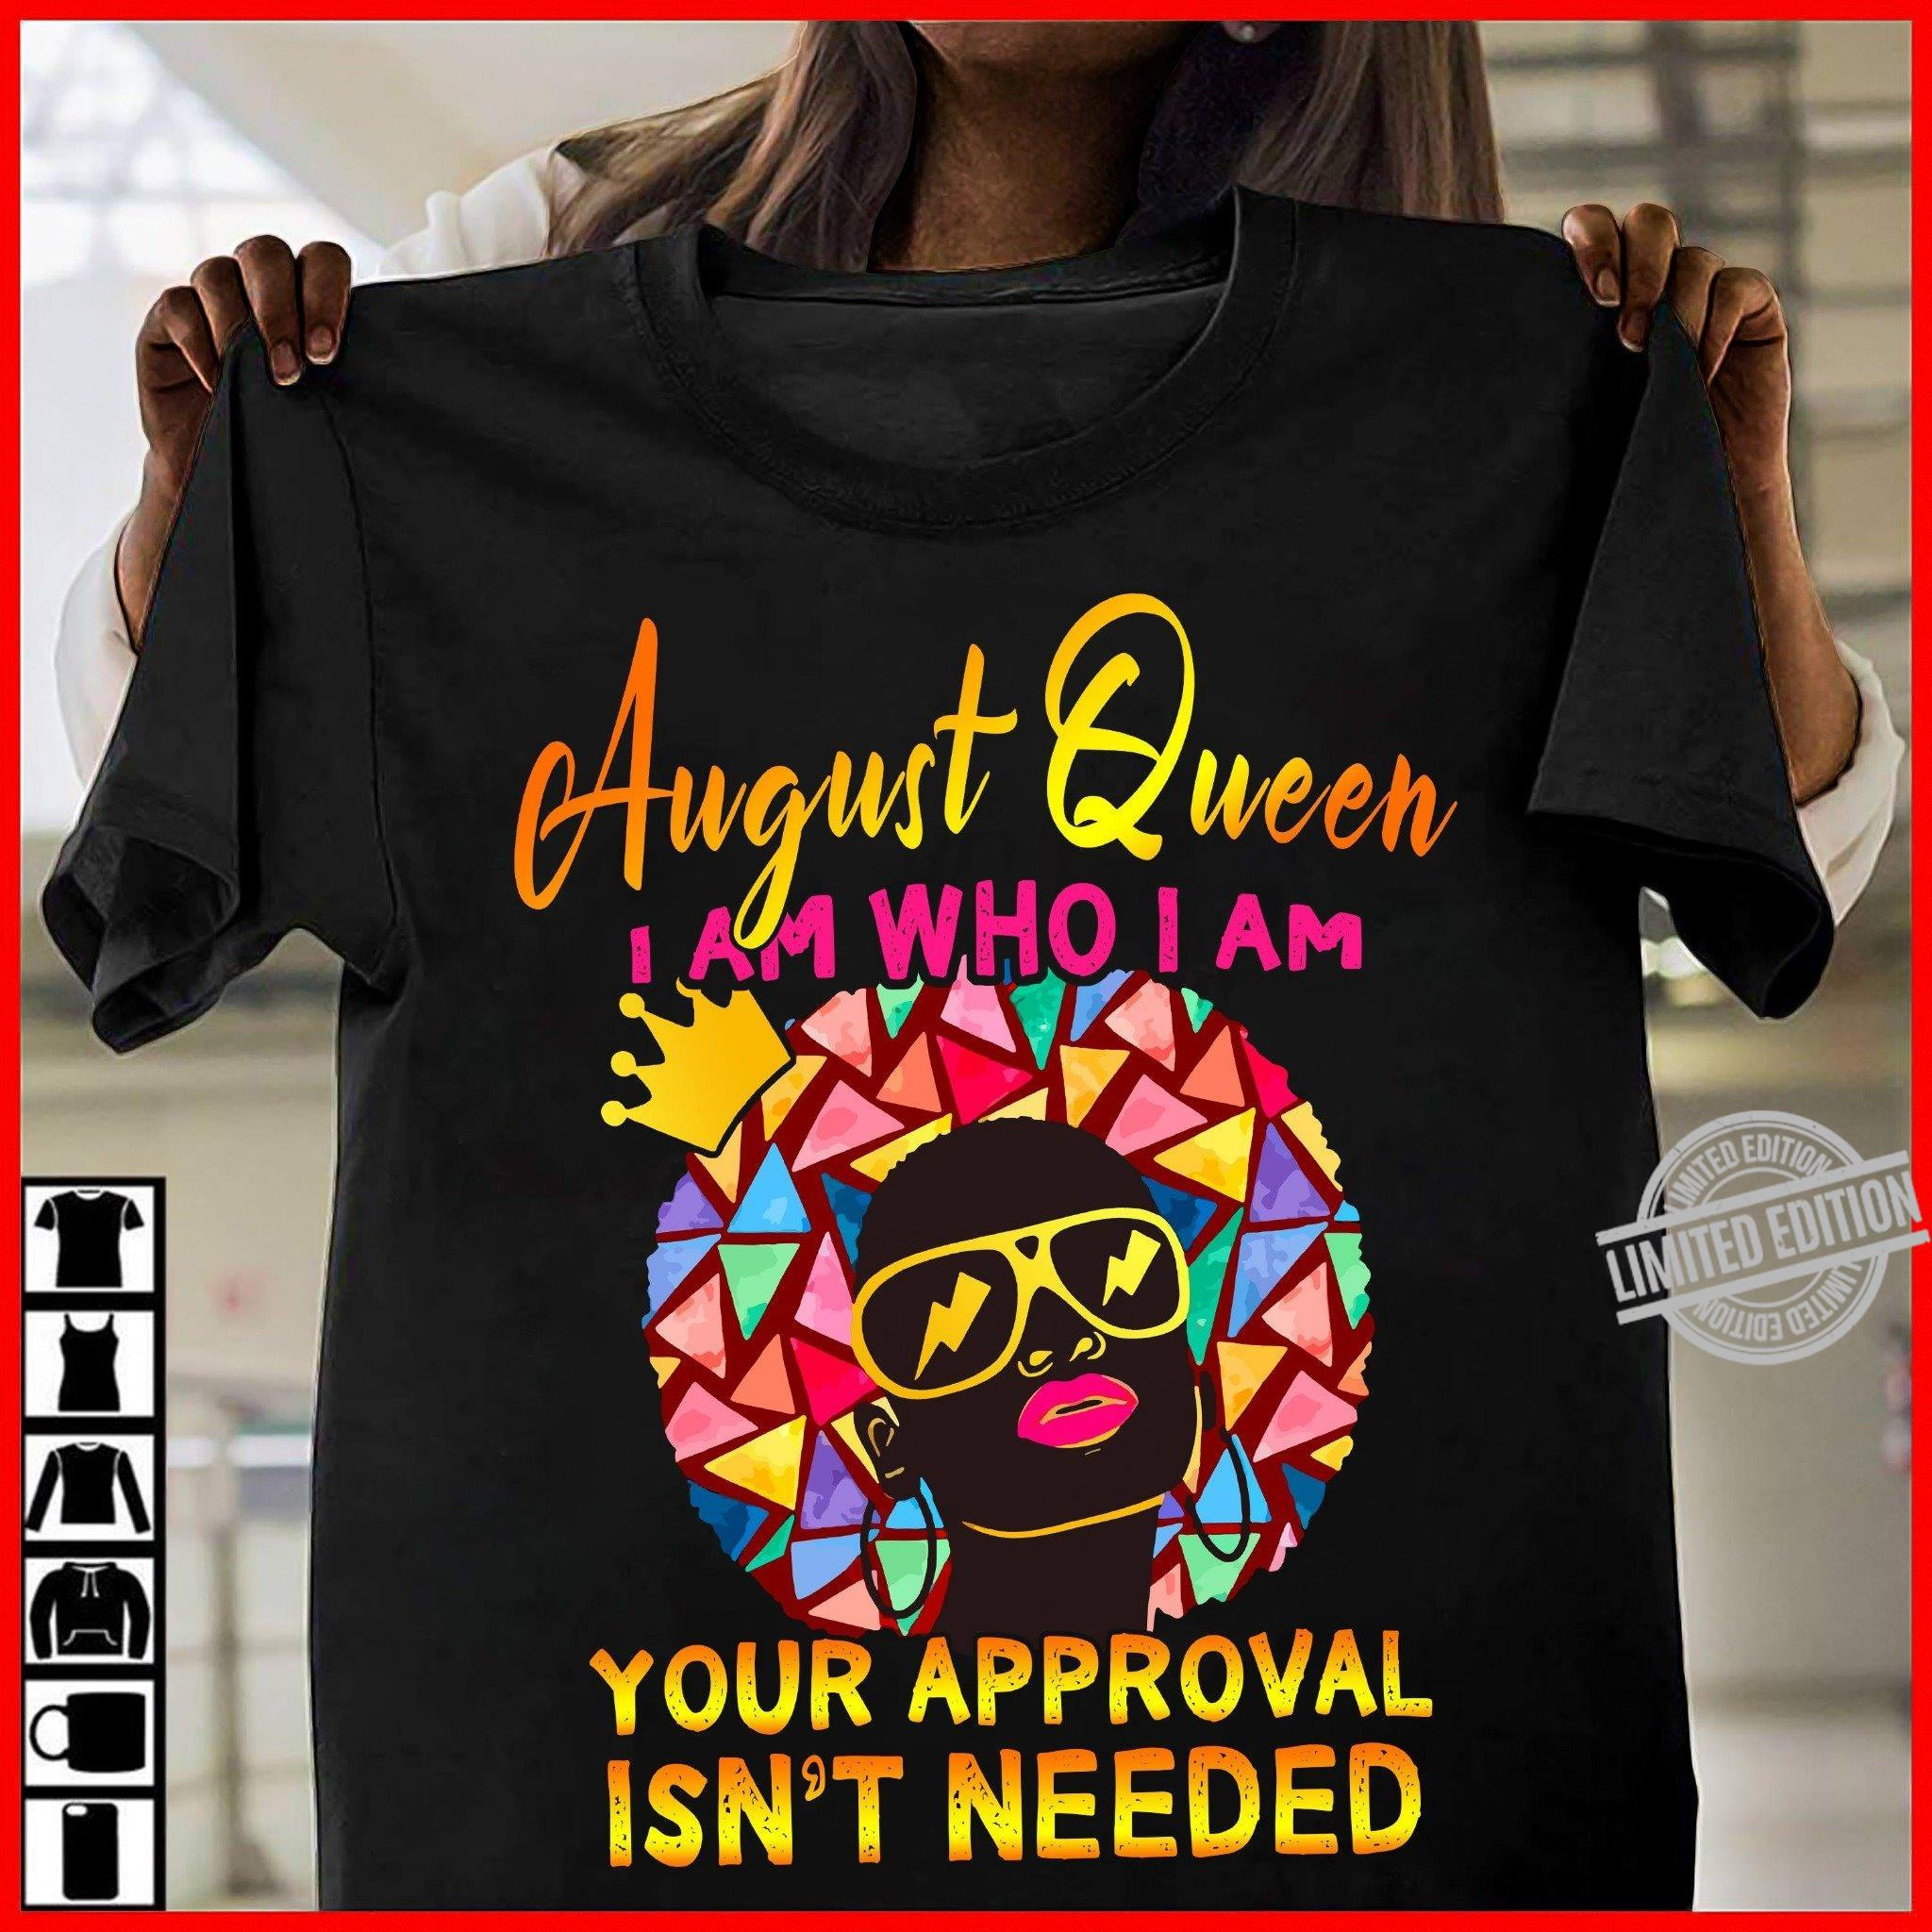 August Queen I Am Who I Am Your Approval Isn't Needed Shirt